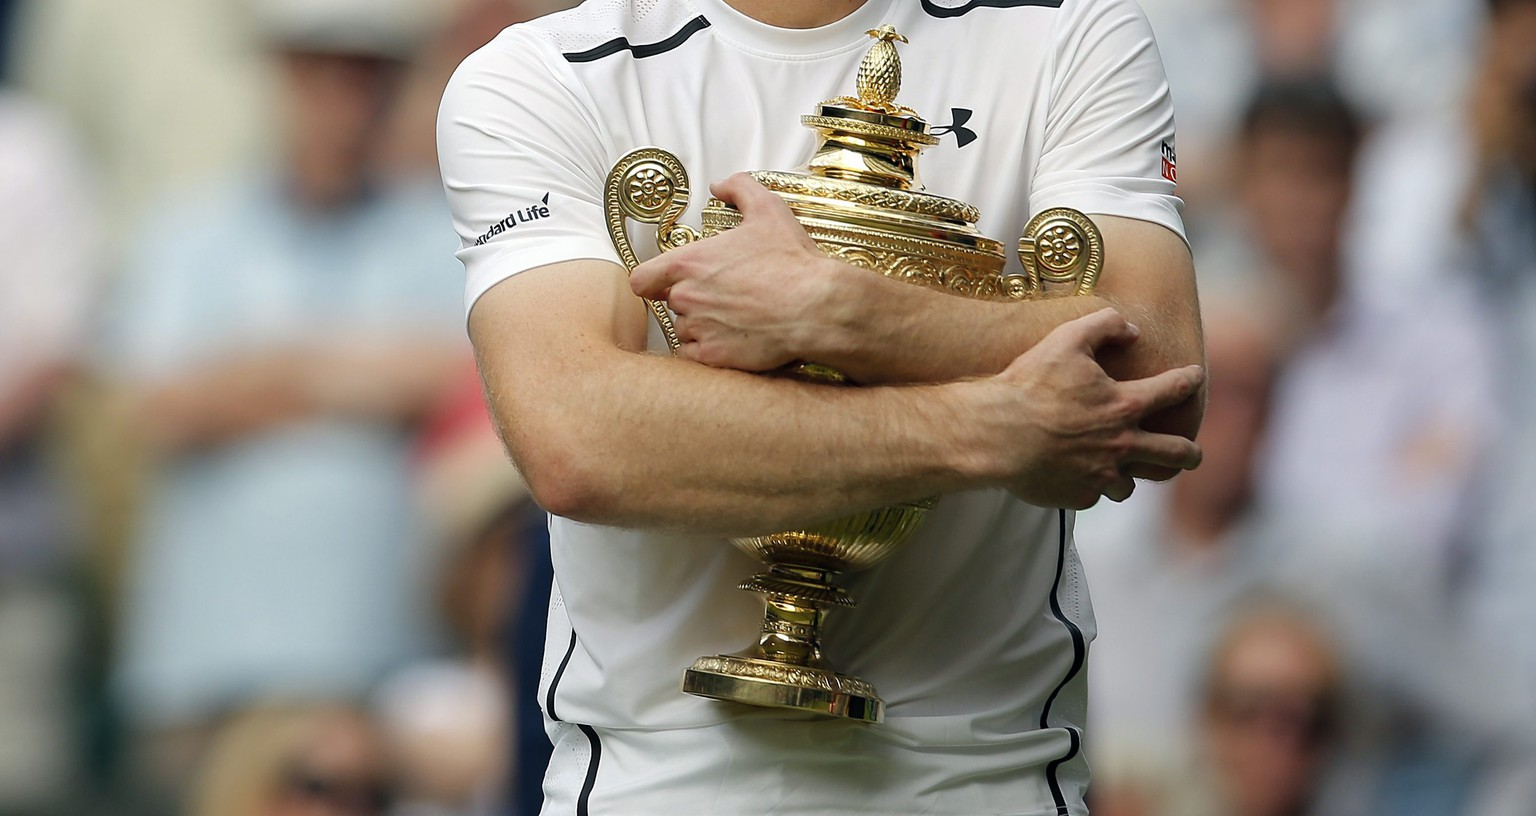 epa05418843 Andy Murray of Britain with the championship trophy following his win over Milos Raonic of Canada in the men's singles final of the Wimbledon Championships at the All England Lawn Tennis Club, in London, Britain, 10 July 2016.  EPA/ANDREW COULDRIDGE POOL EDITORIAL USE ONLY/NO COMMERCIAL SALES